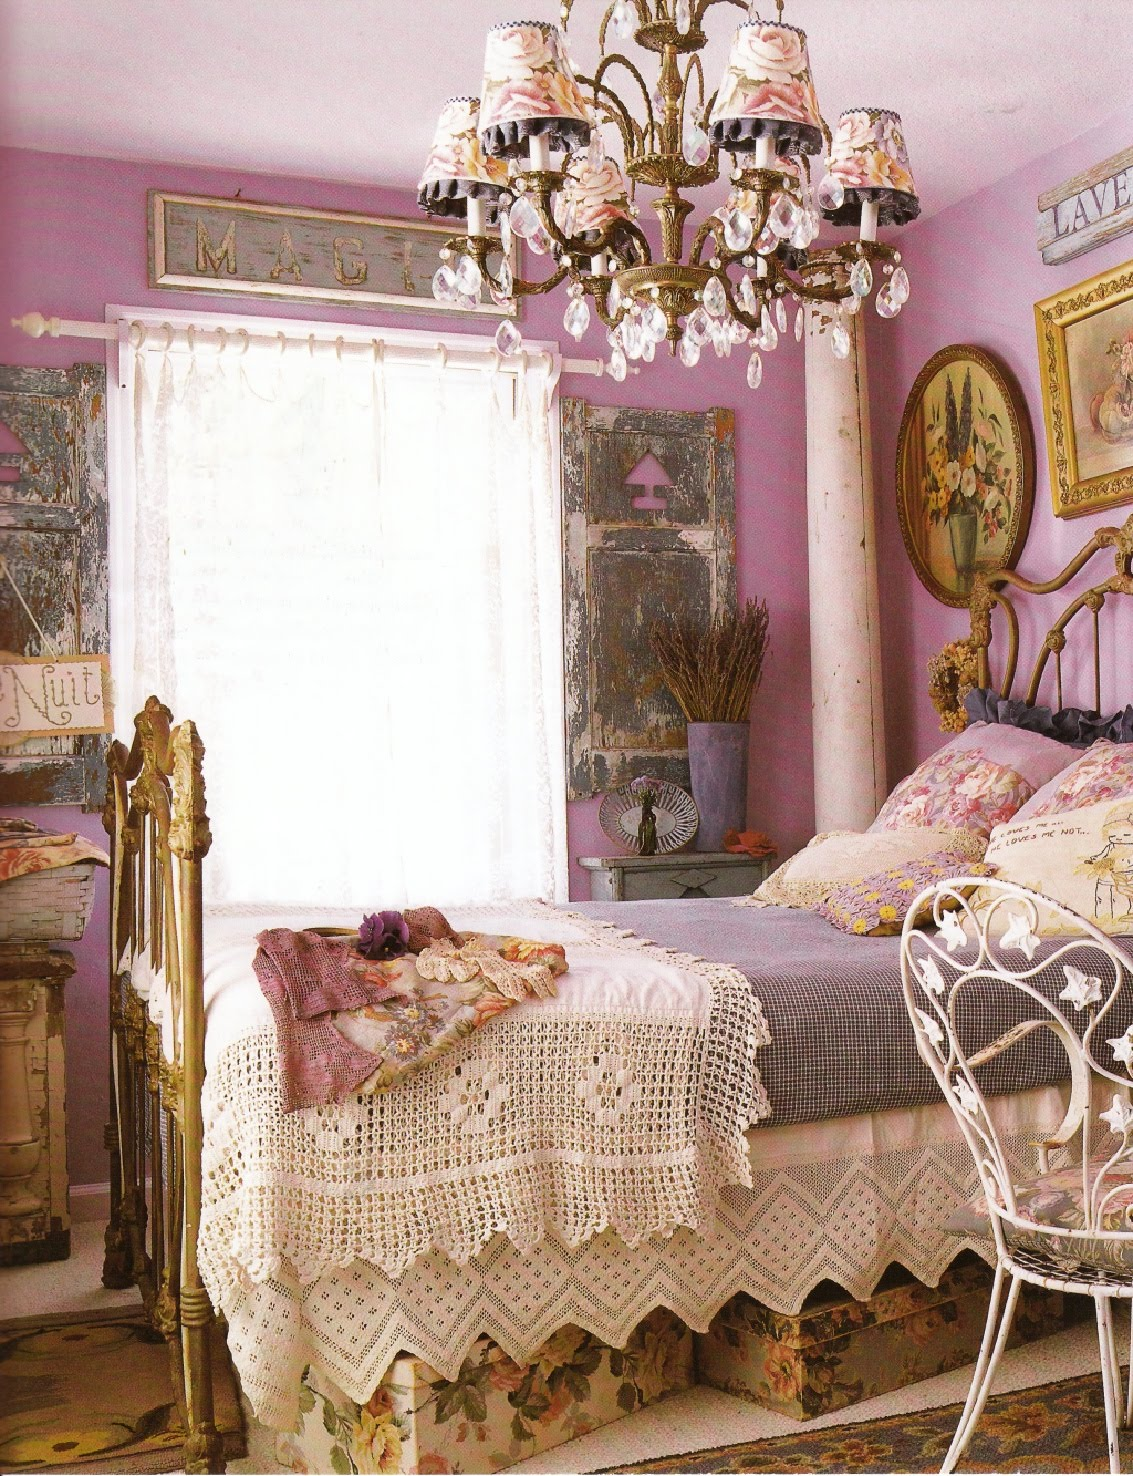 via rock candy blog vintage shabby chic furniture and. Black Bedroom Furniture Sets. Home Design Ideas